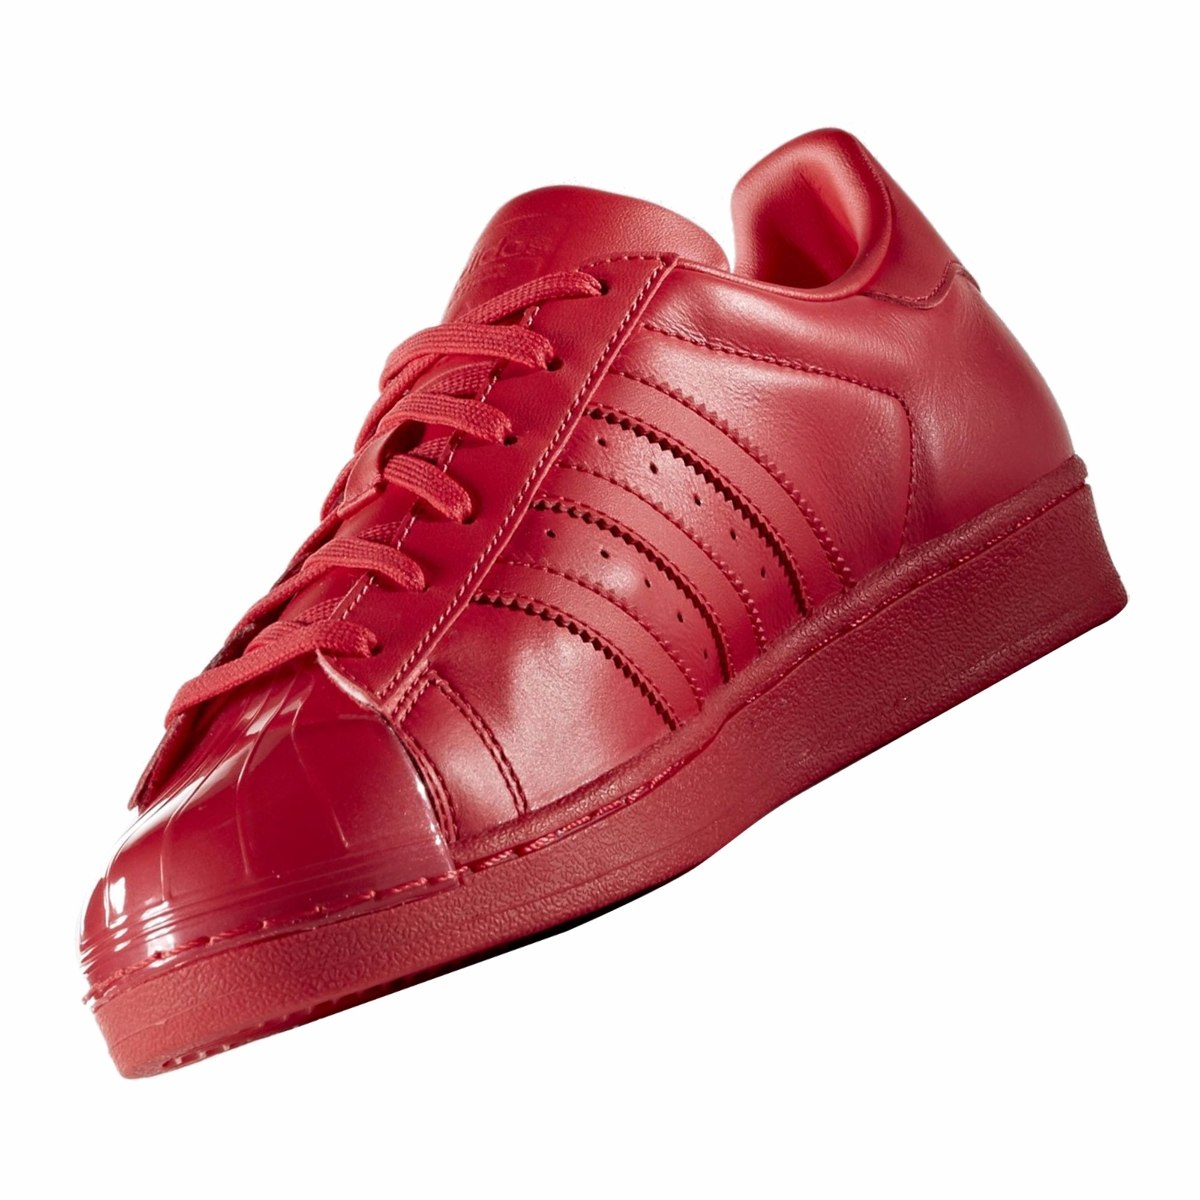 adidas rojas superstar